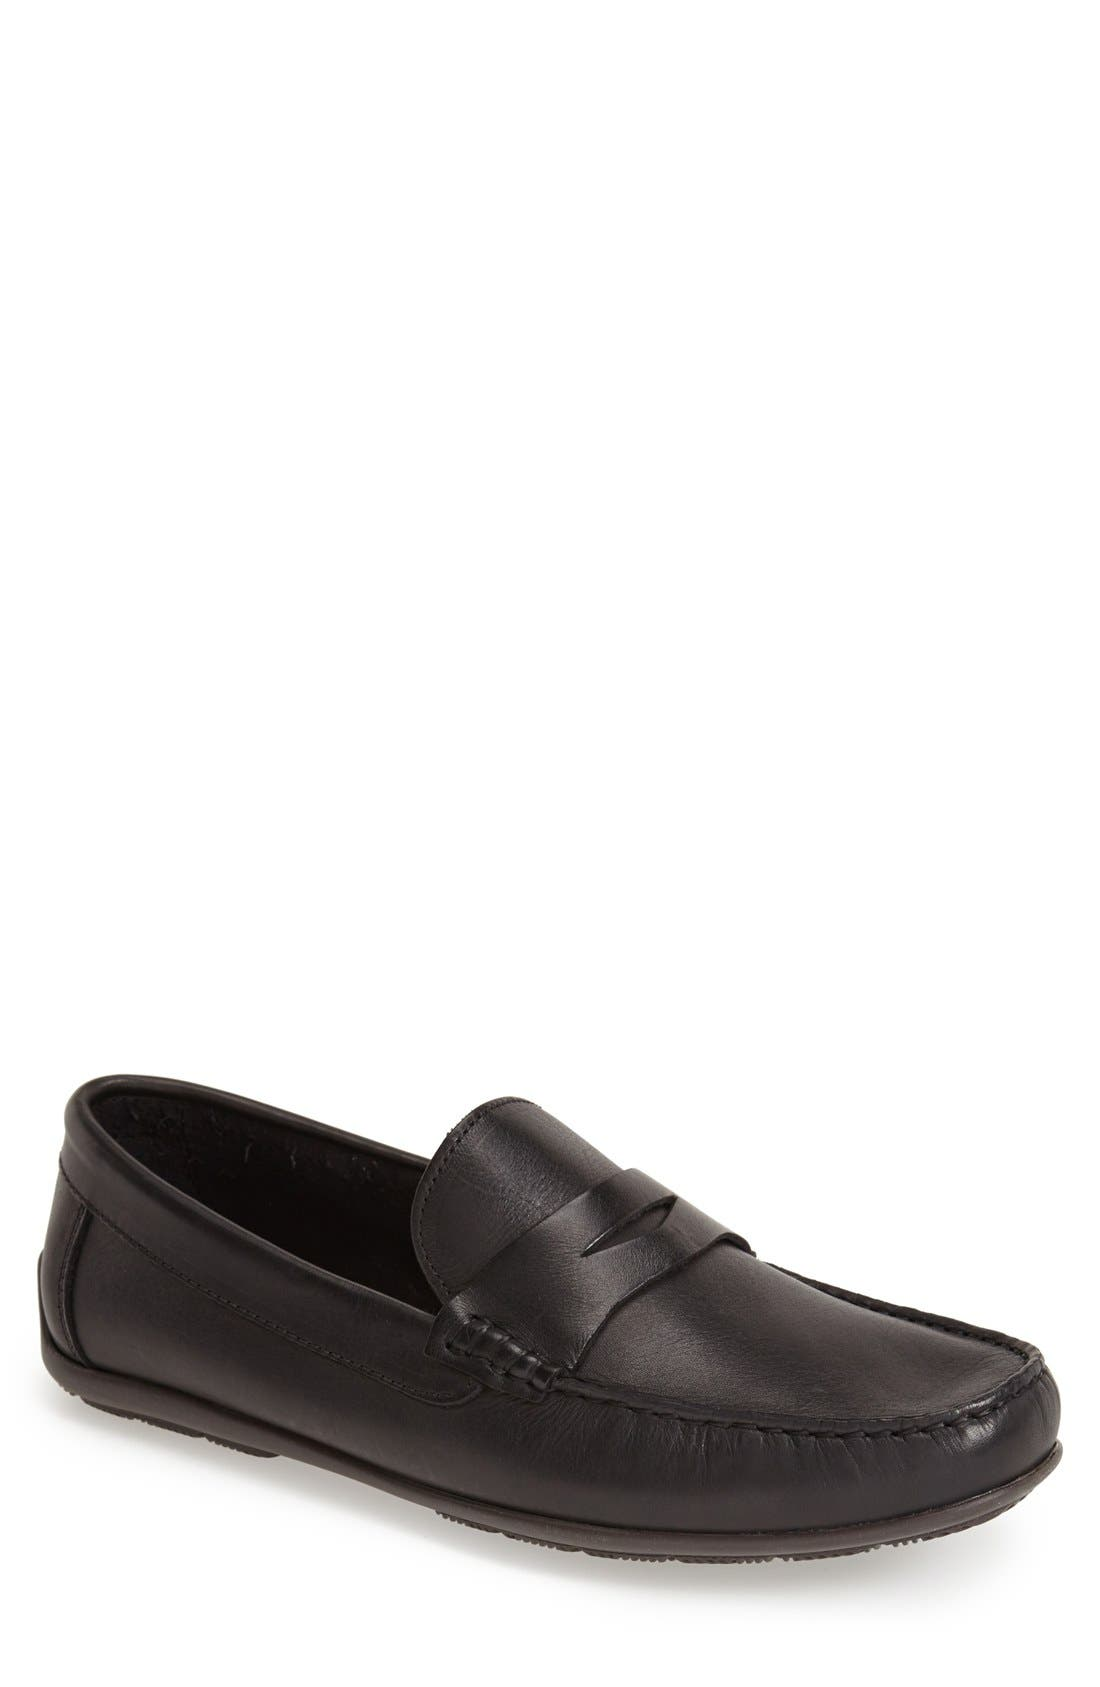 'Paris' Leather Penny Loafer,                         Main,                         color, BLACK